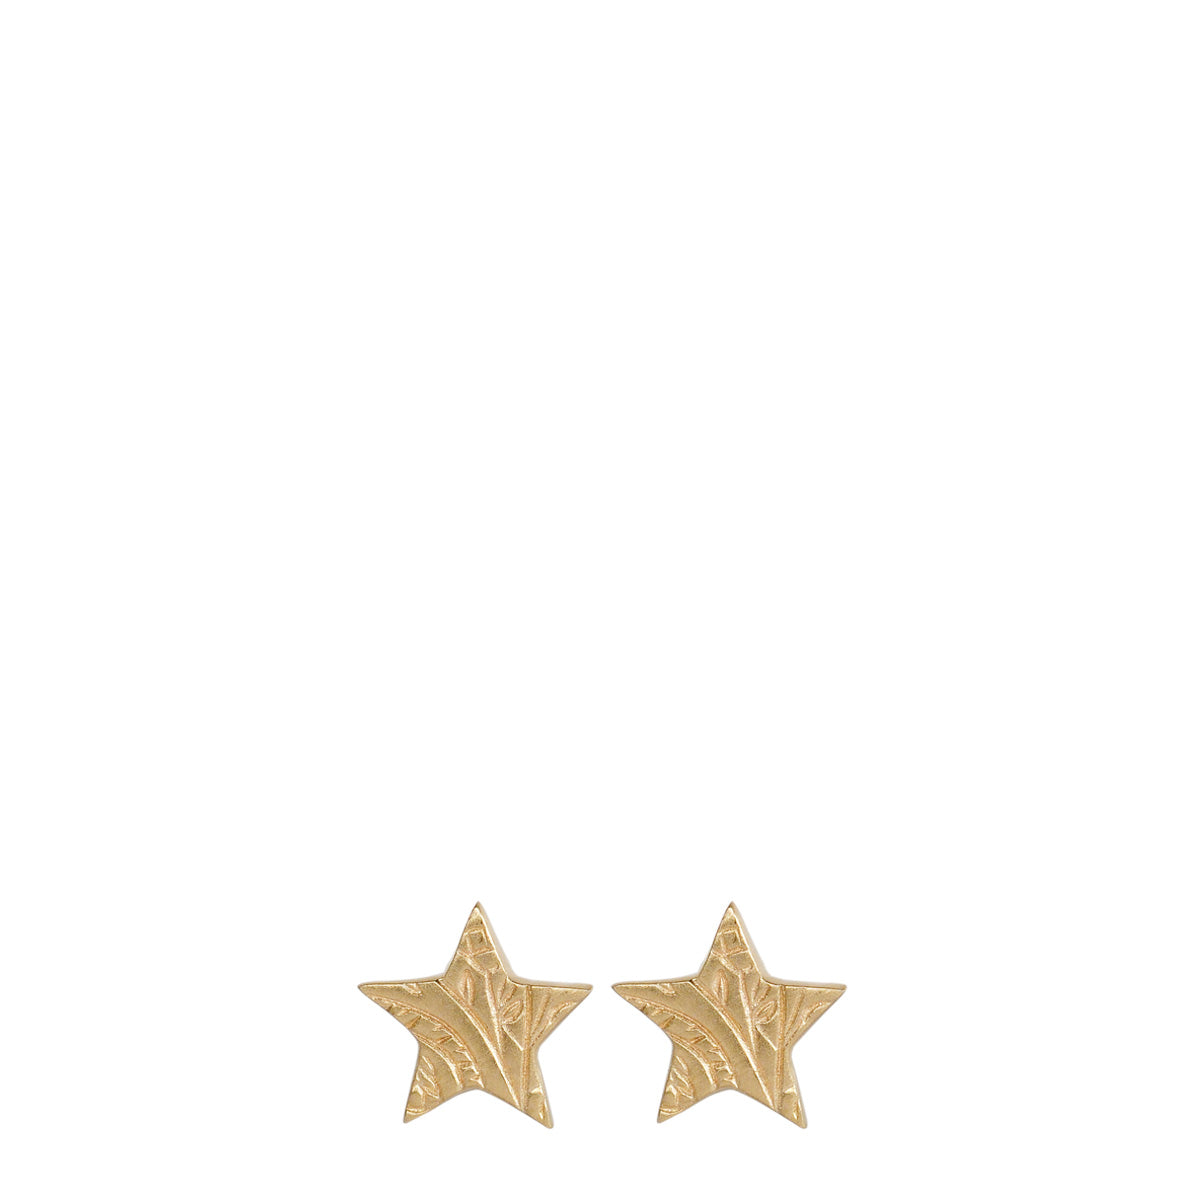 10K Gold Small Paisley Star Stud Earrings